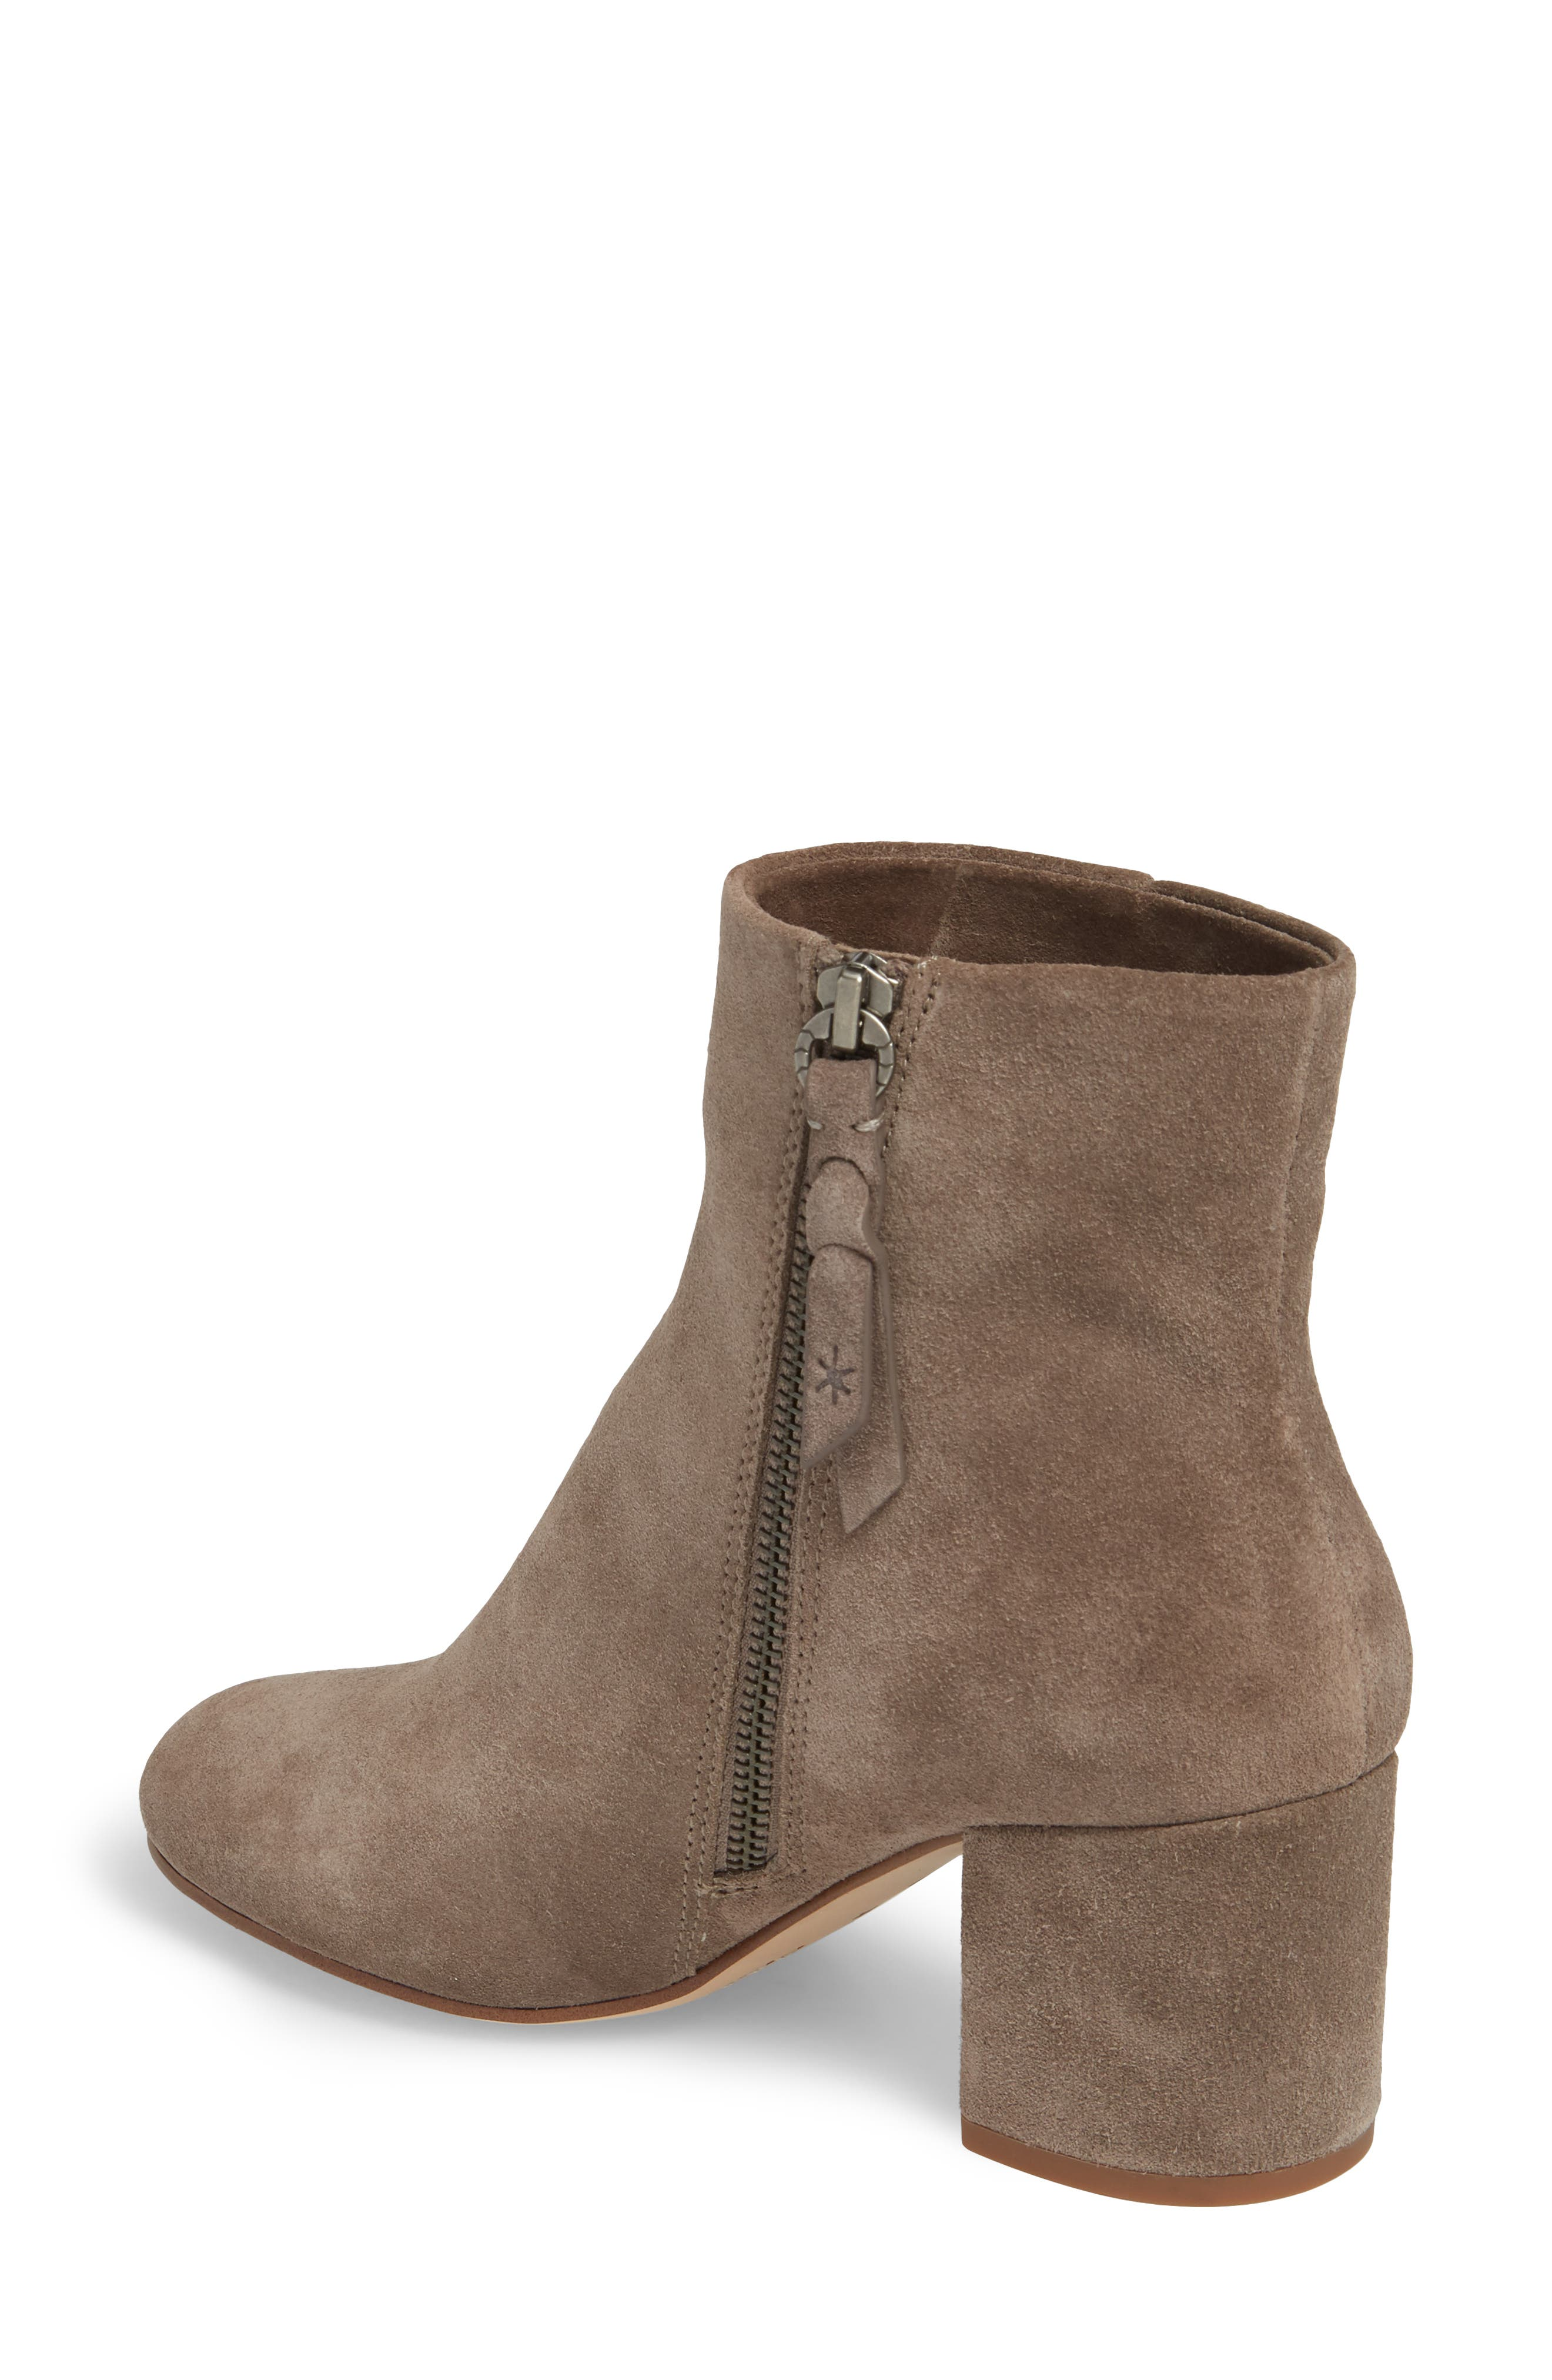 Nixie Bootie,                             Alternate thumbnail 2, color,                             LIGHT CHARCOAL SUEDE